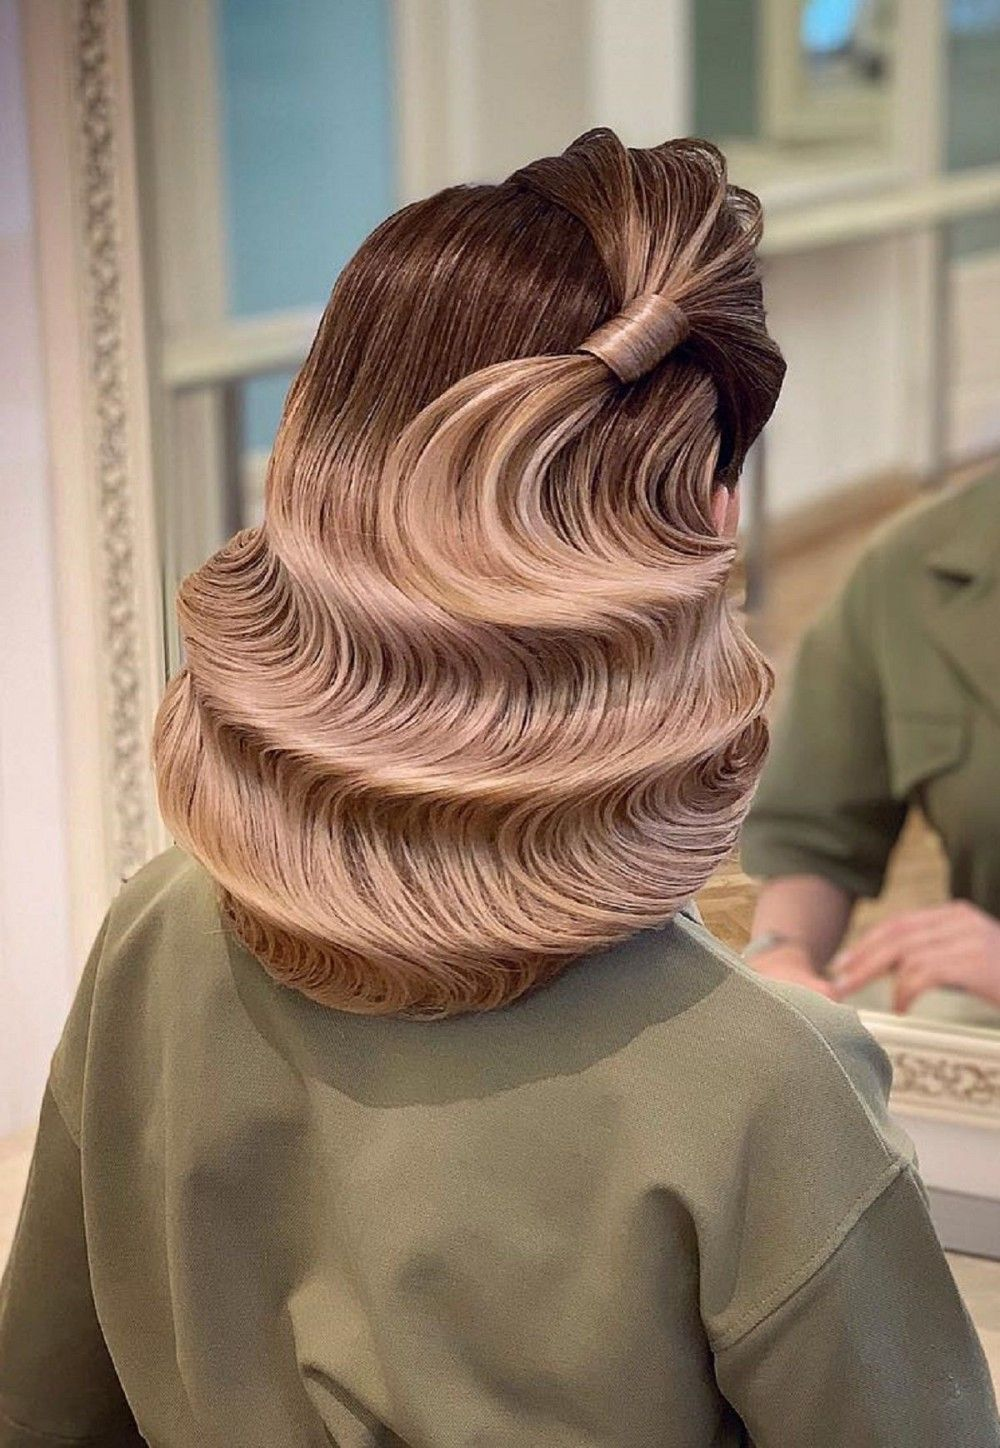 Unique Hairstyle  Cool hairstyles, Long hair styles, Unique